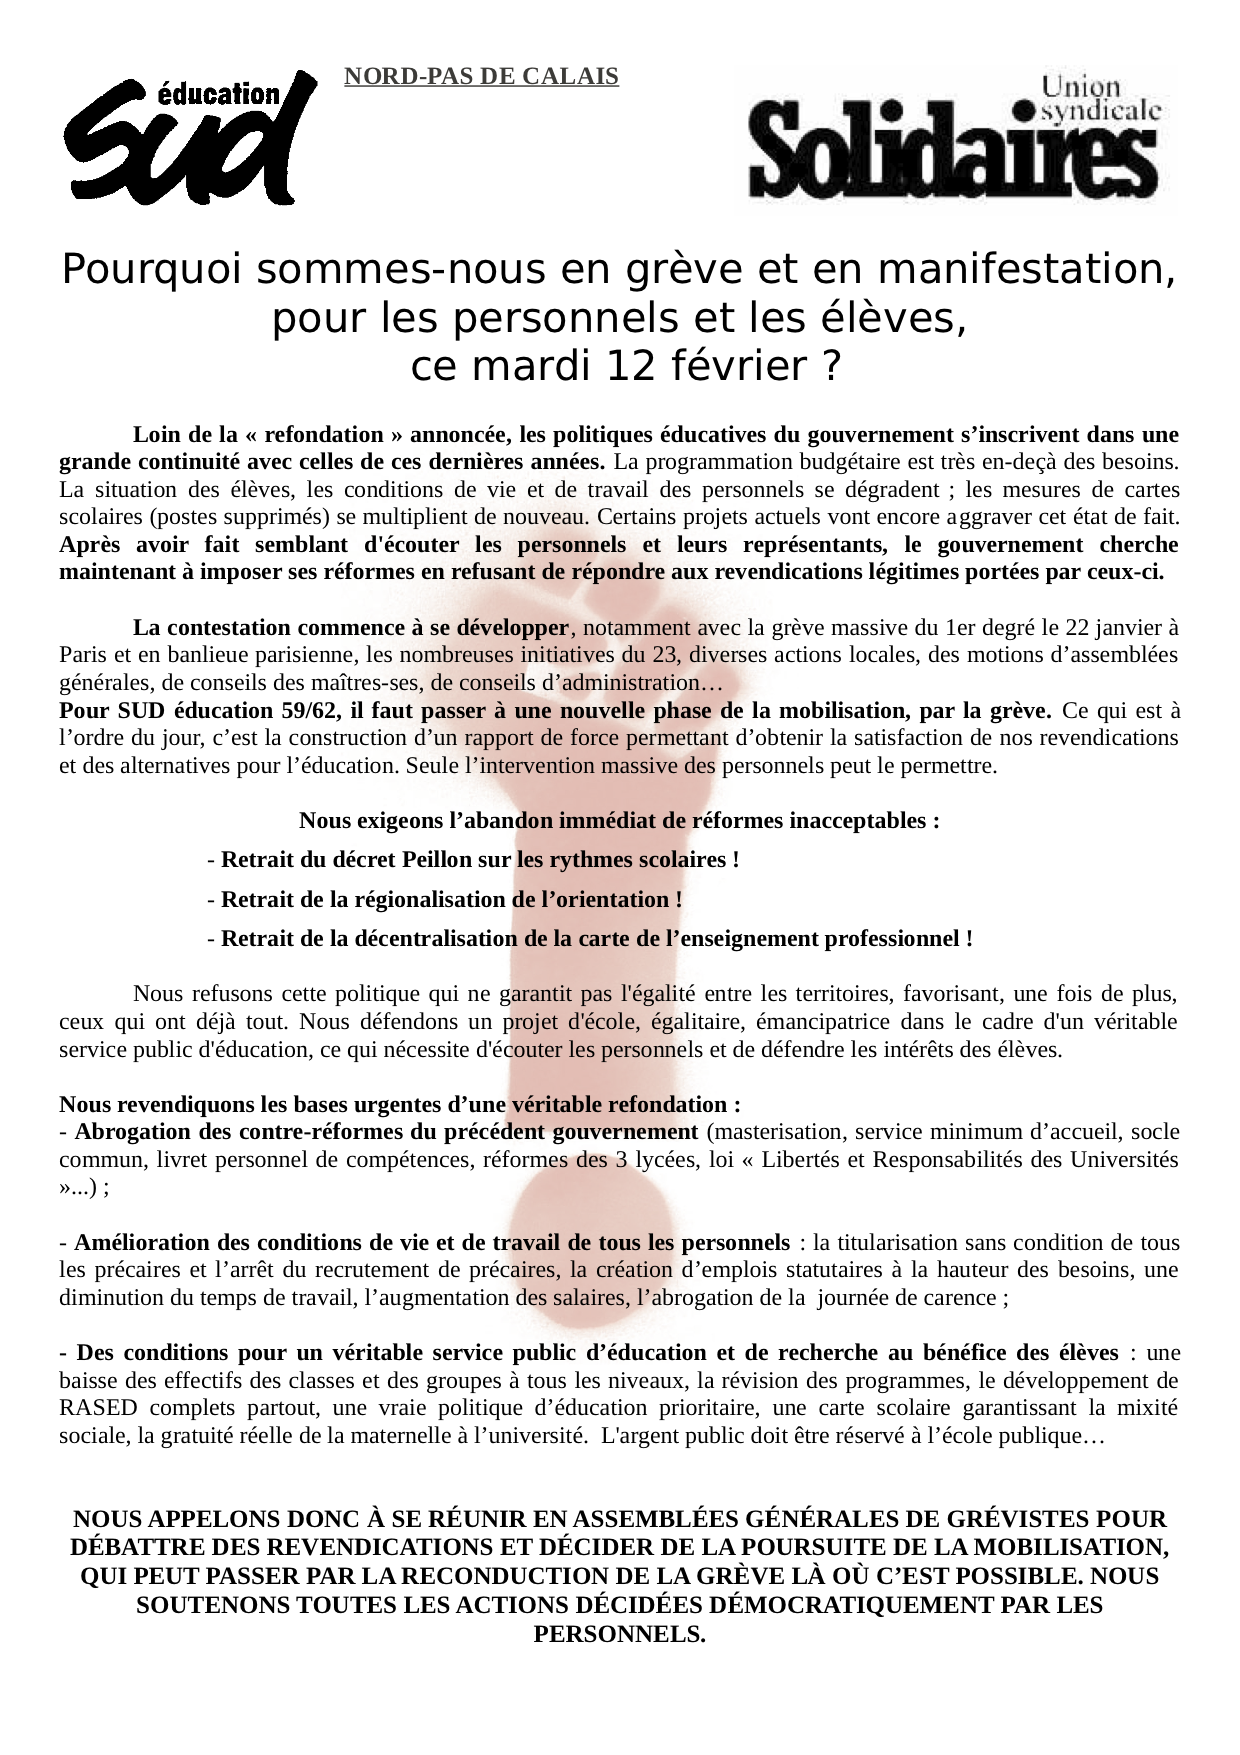 01 TRACT 12 FEVRIER-manif